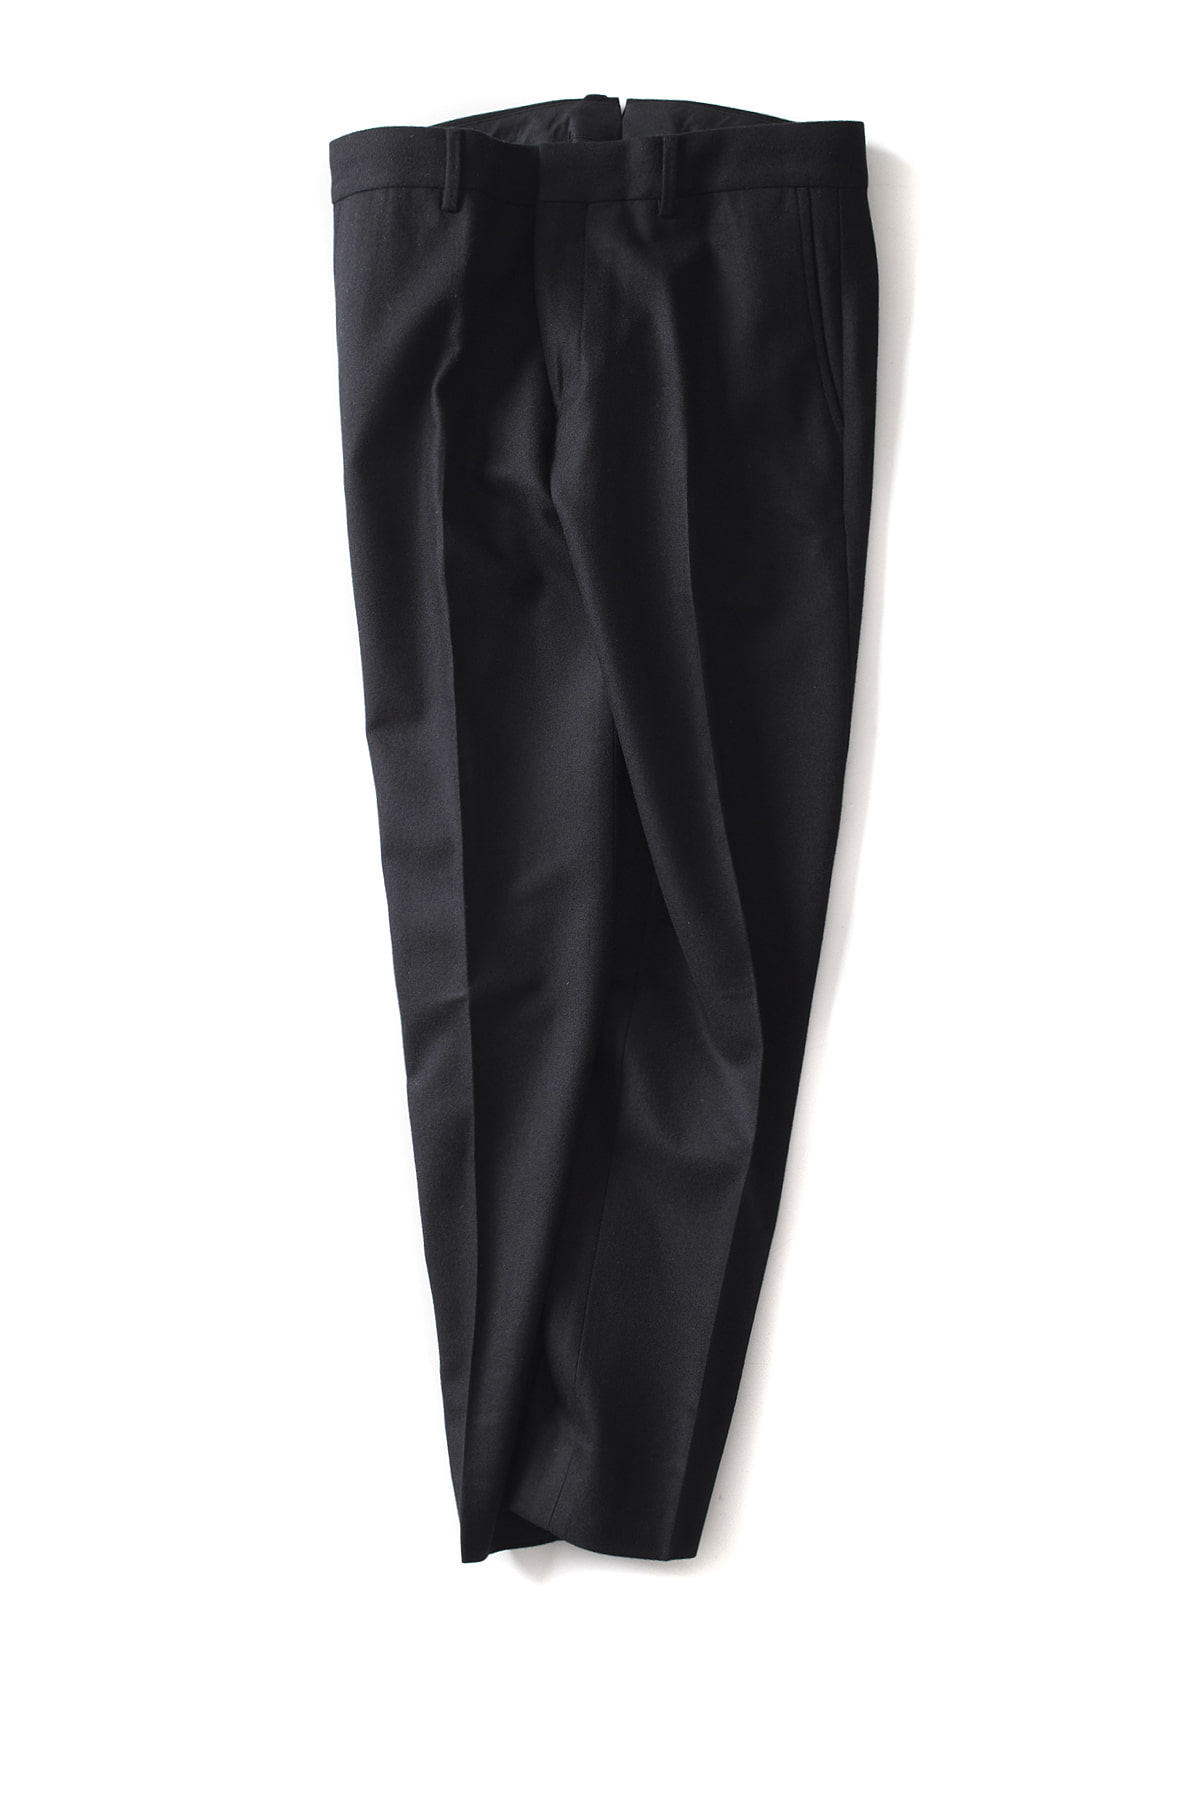 "Bedwin & The Heartbreakers : 10/L Tapered Cordura Wool Pants ""CHARLS"" (Black)"